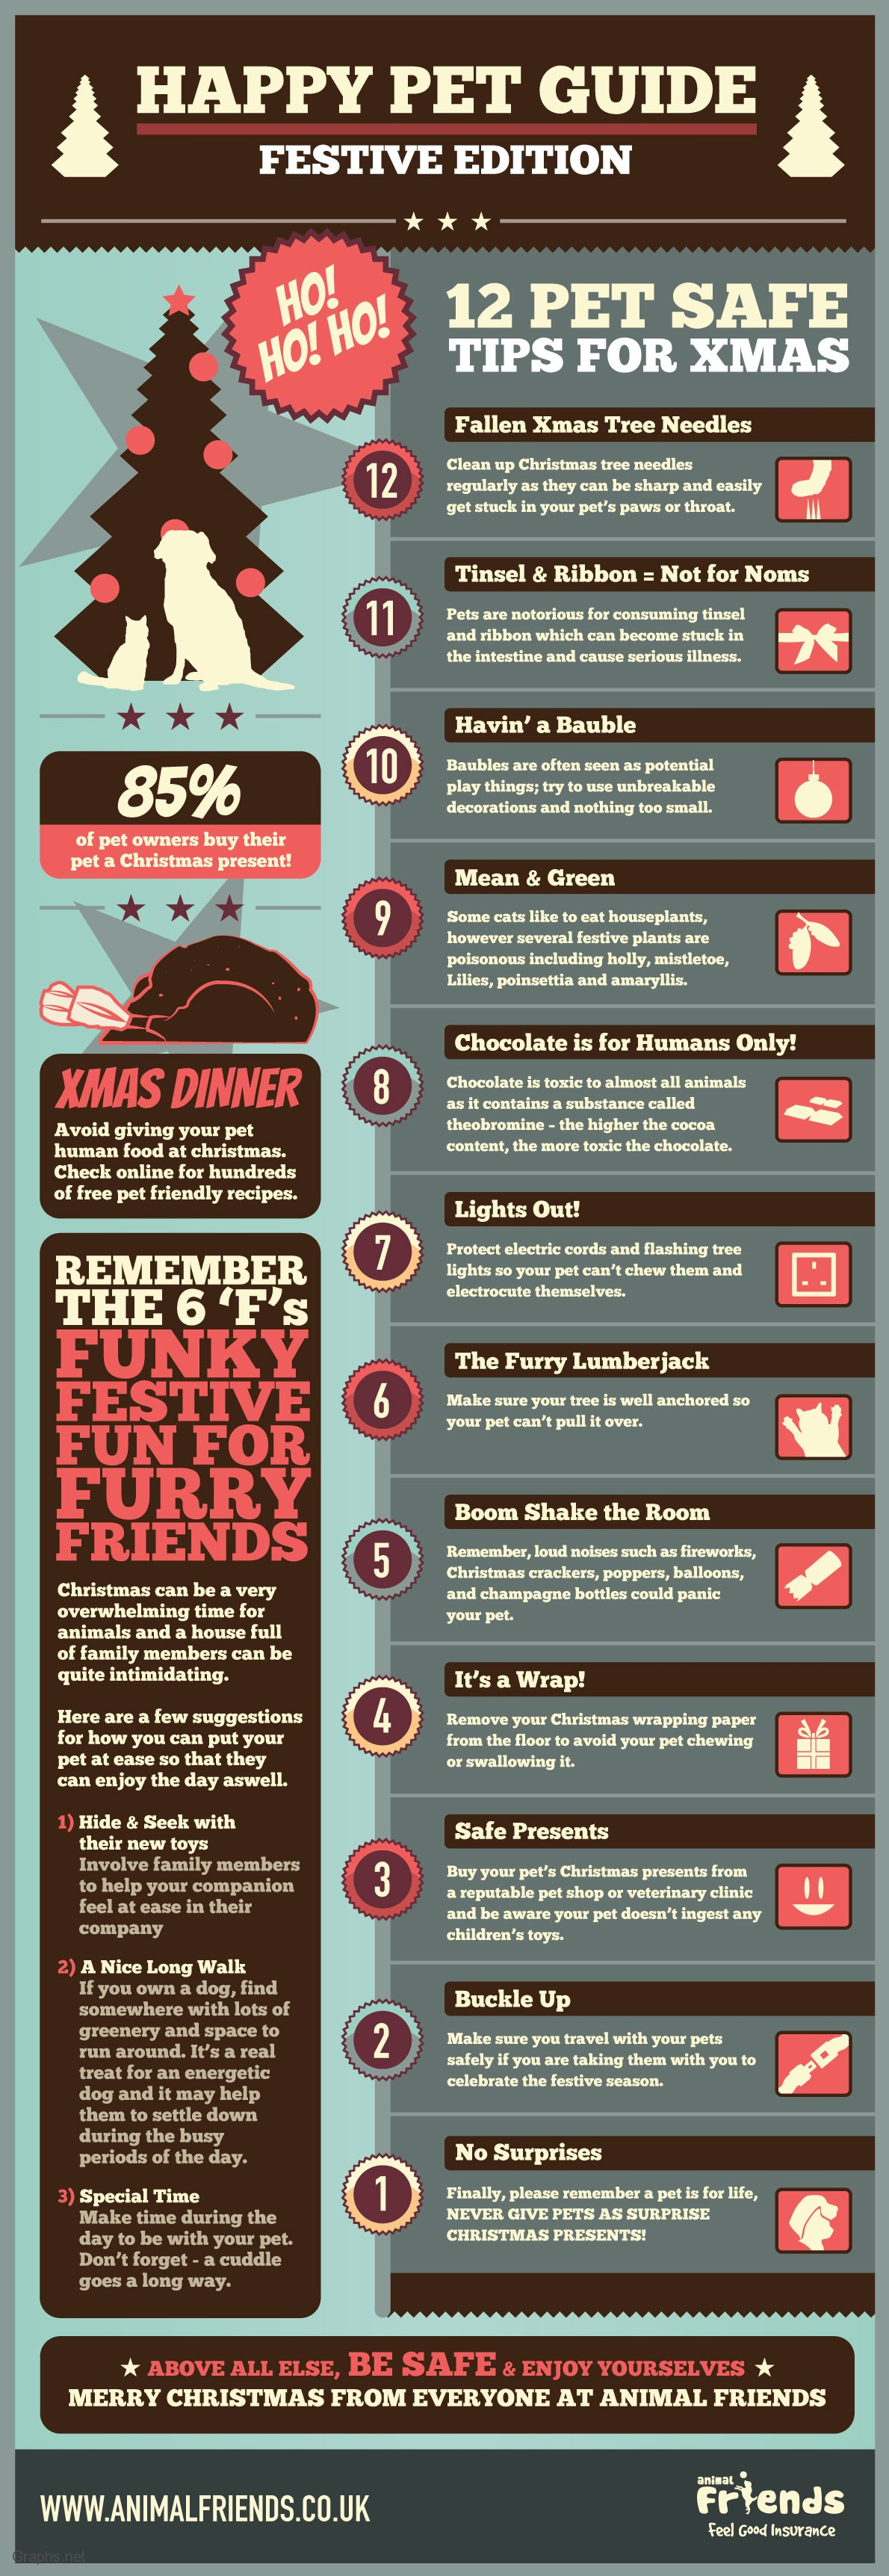 Top 12 Tips for Pet Safe Chirstmas